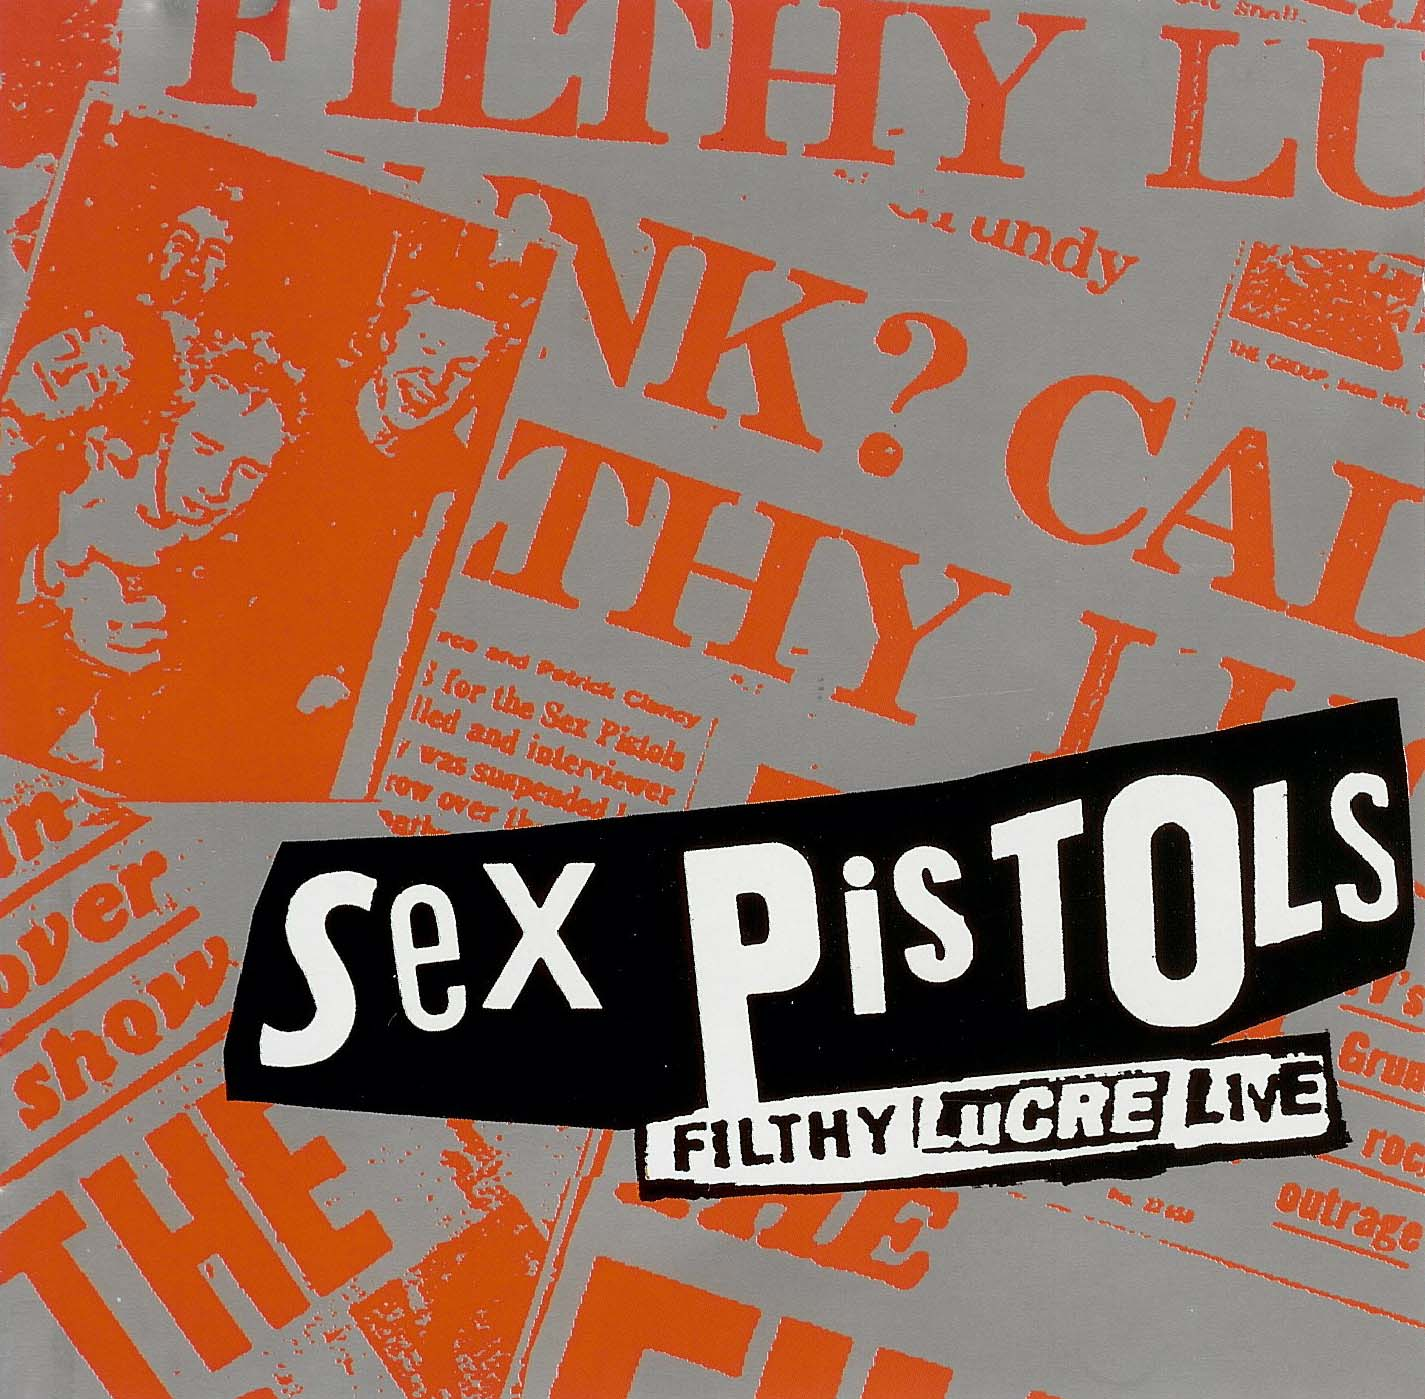 Filthy Lucre Live - 1996